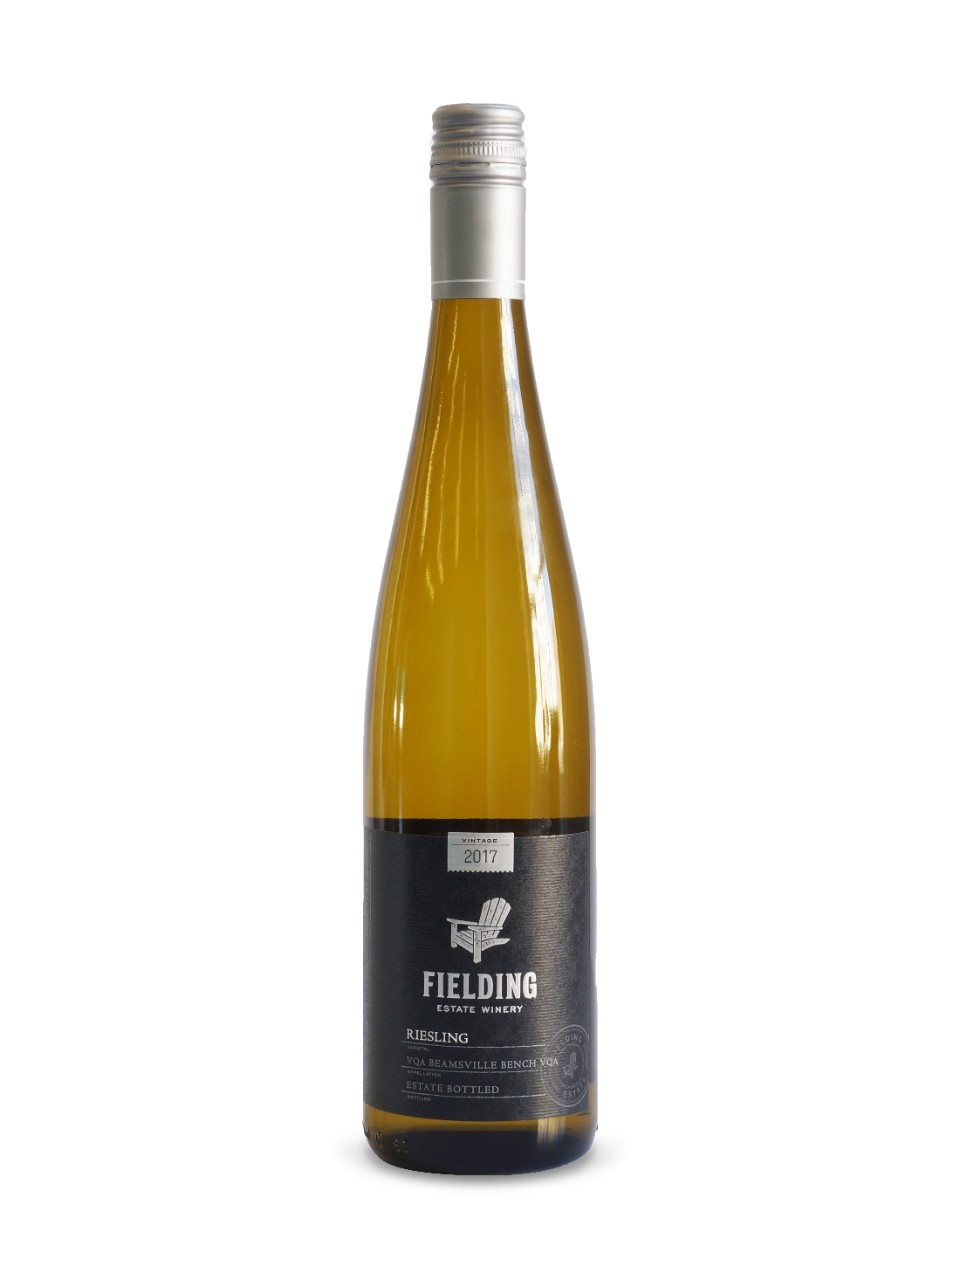 Riesling Mise du domaine Fielding 2017